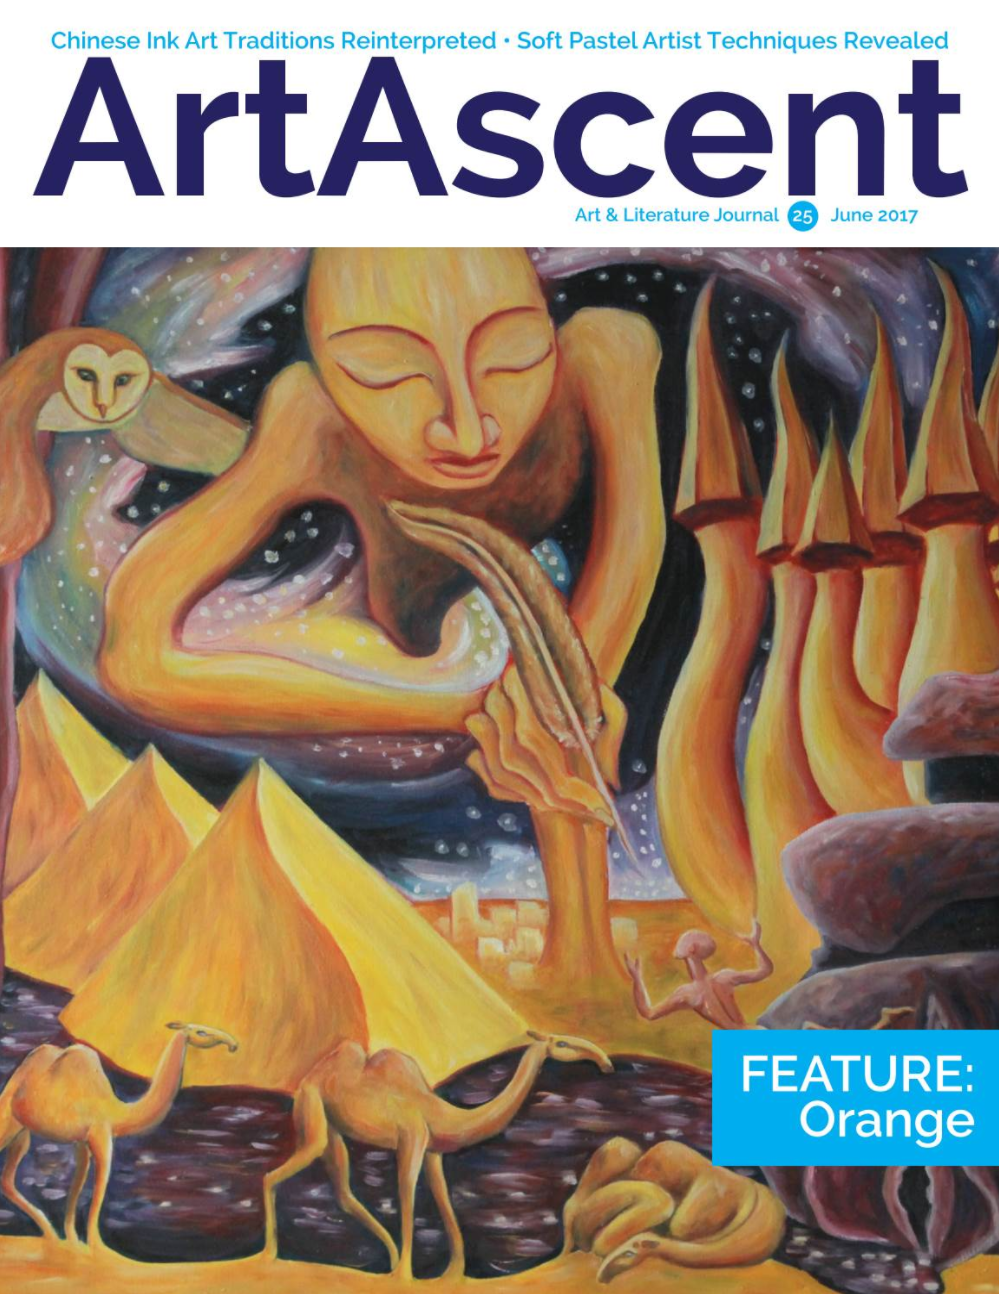 ArtAscent June 2017 Issue - 1.png